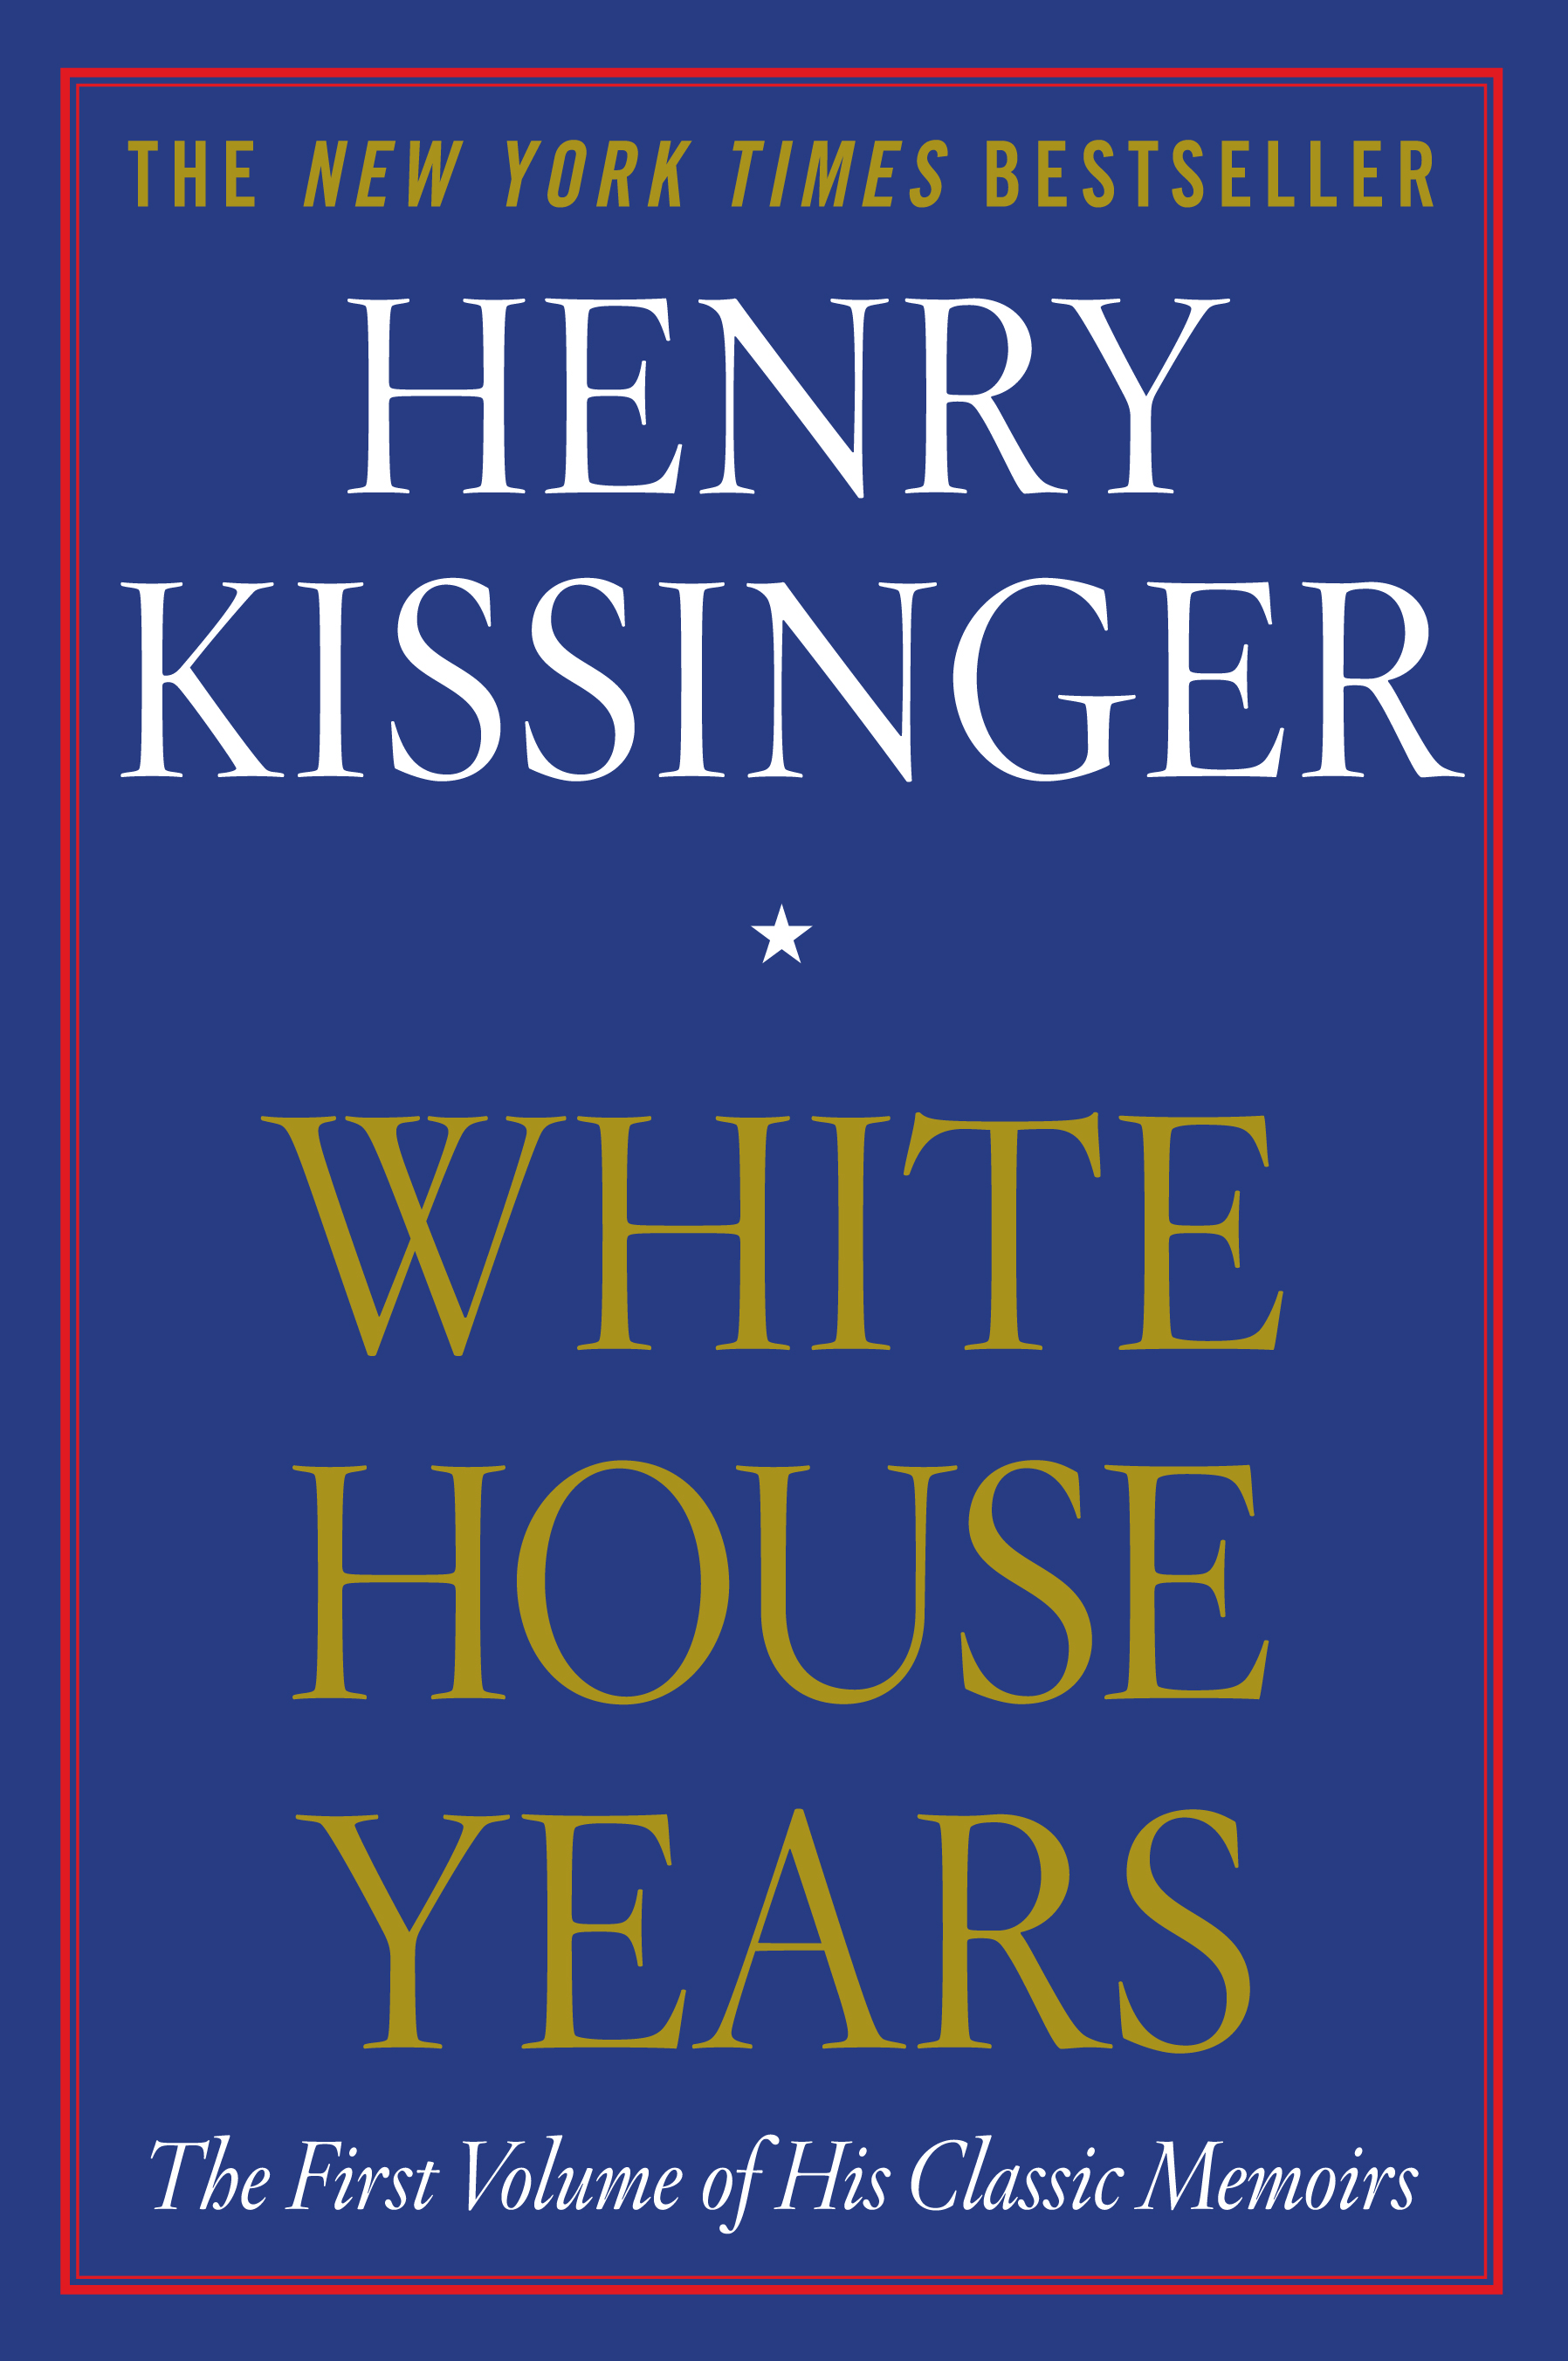 White house years book by henry kissinger official publisher white house years book by henry kissinger official publisher page simon schuster fandeluxe Image collections